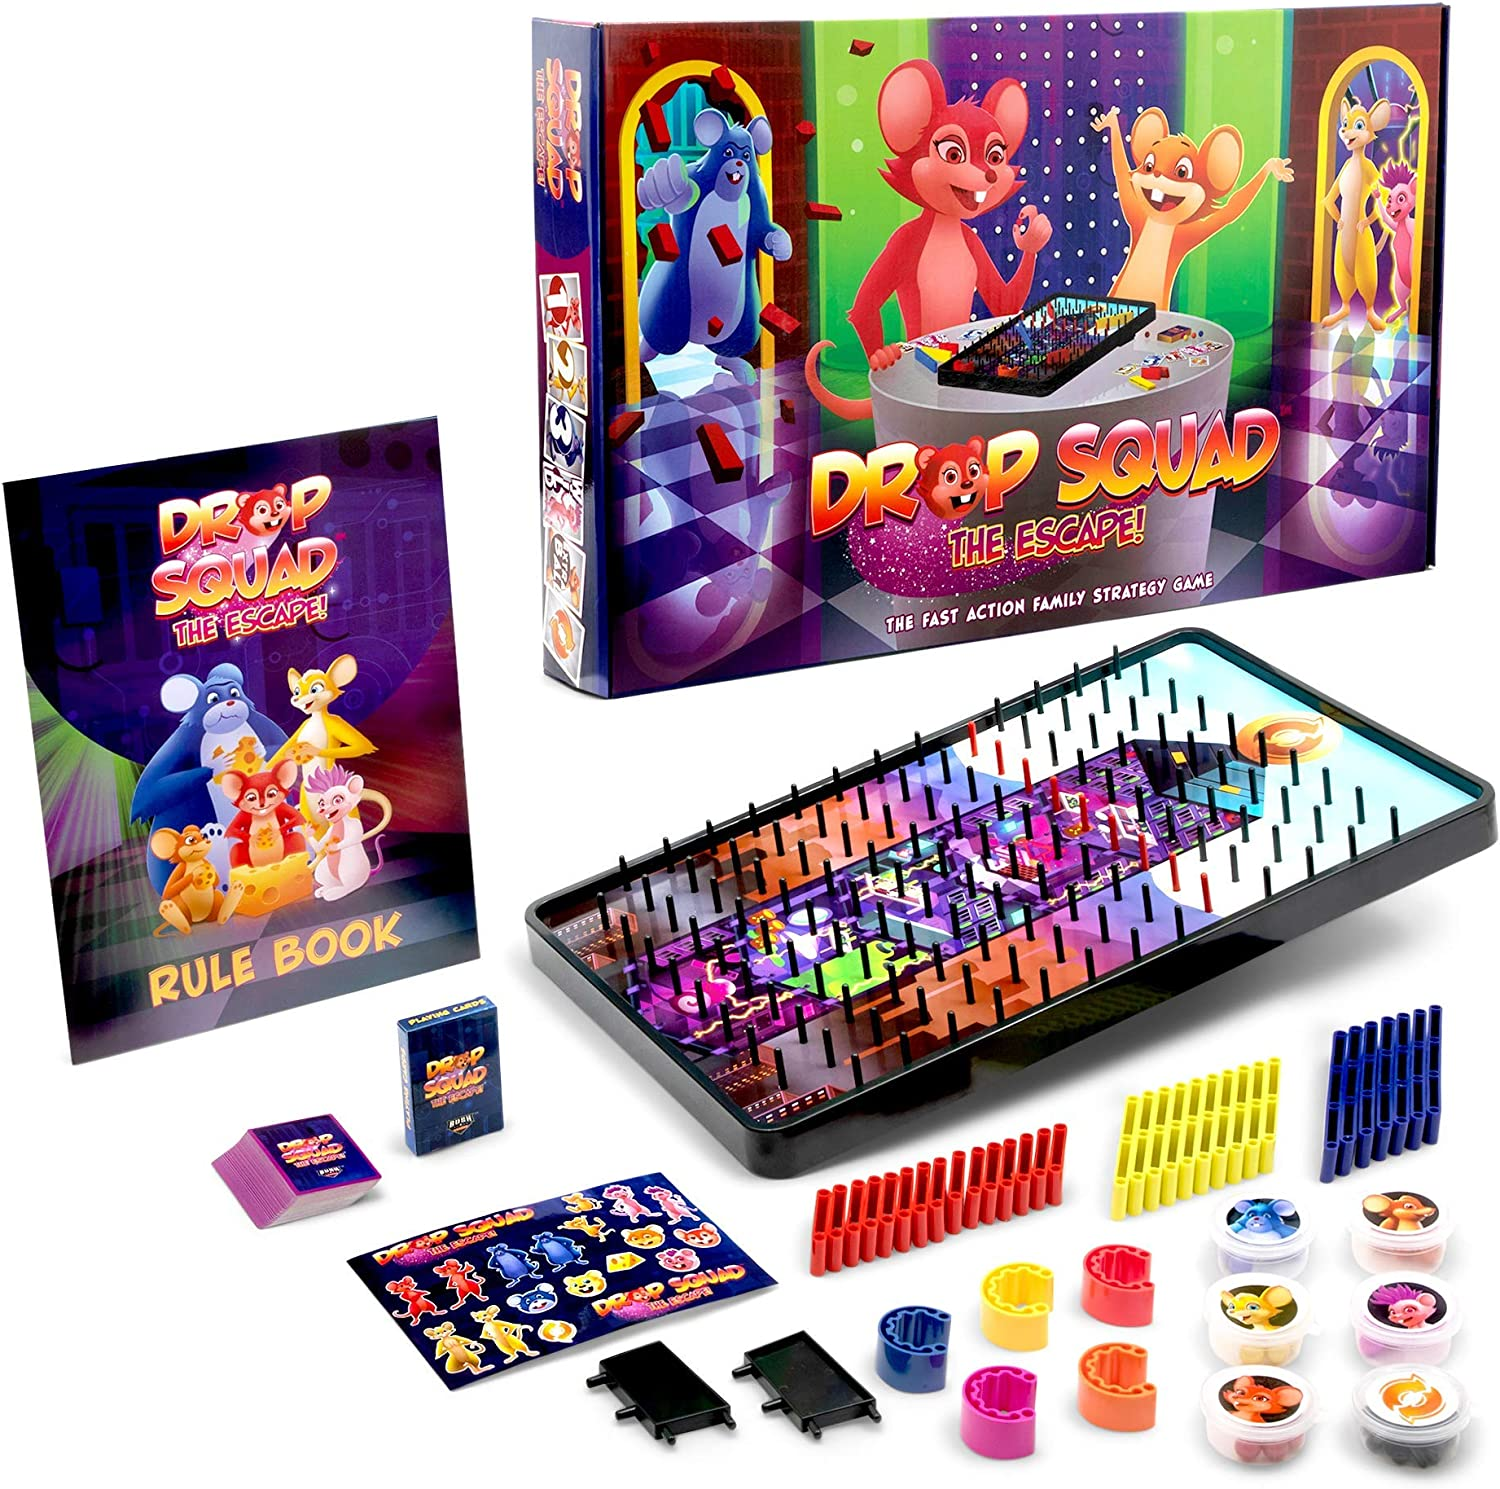 Amazon Com Drop Squad Best Board Game For Kids Adults Best Kid Friendly Table Top Game For A New Family Night Activity Ages 5 6 7 8 9 10 11 12 And Up With Extras Toys Games